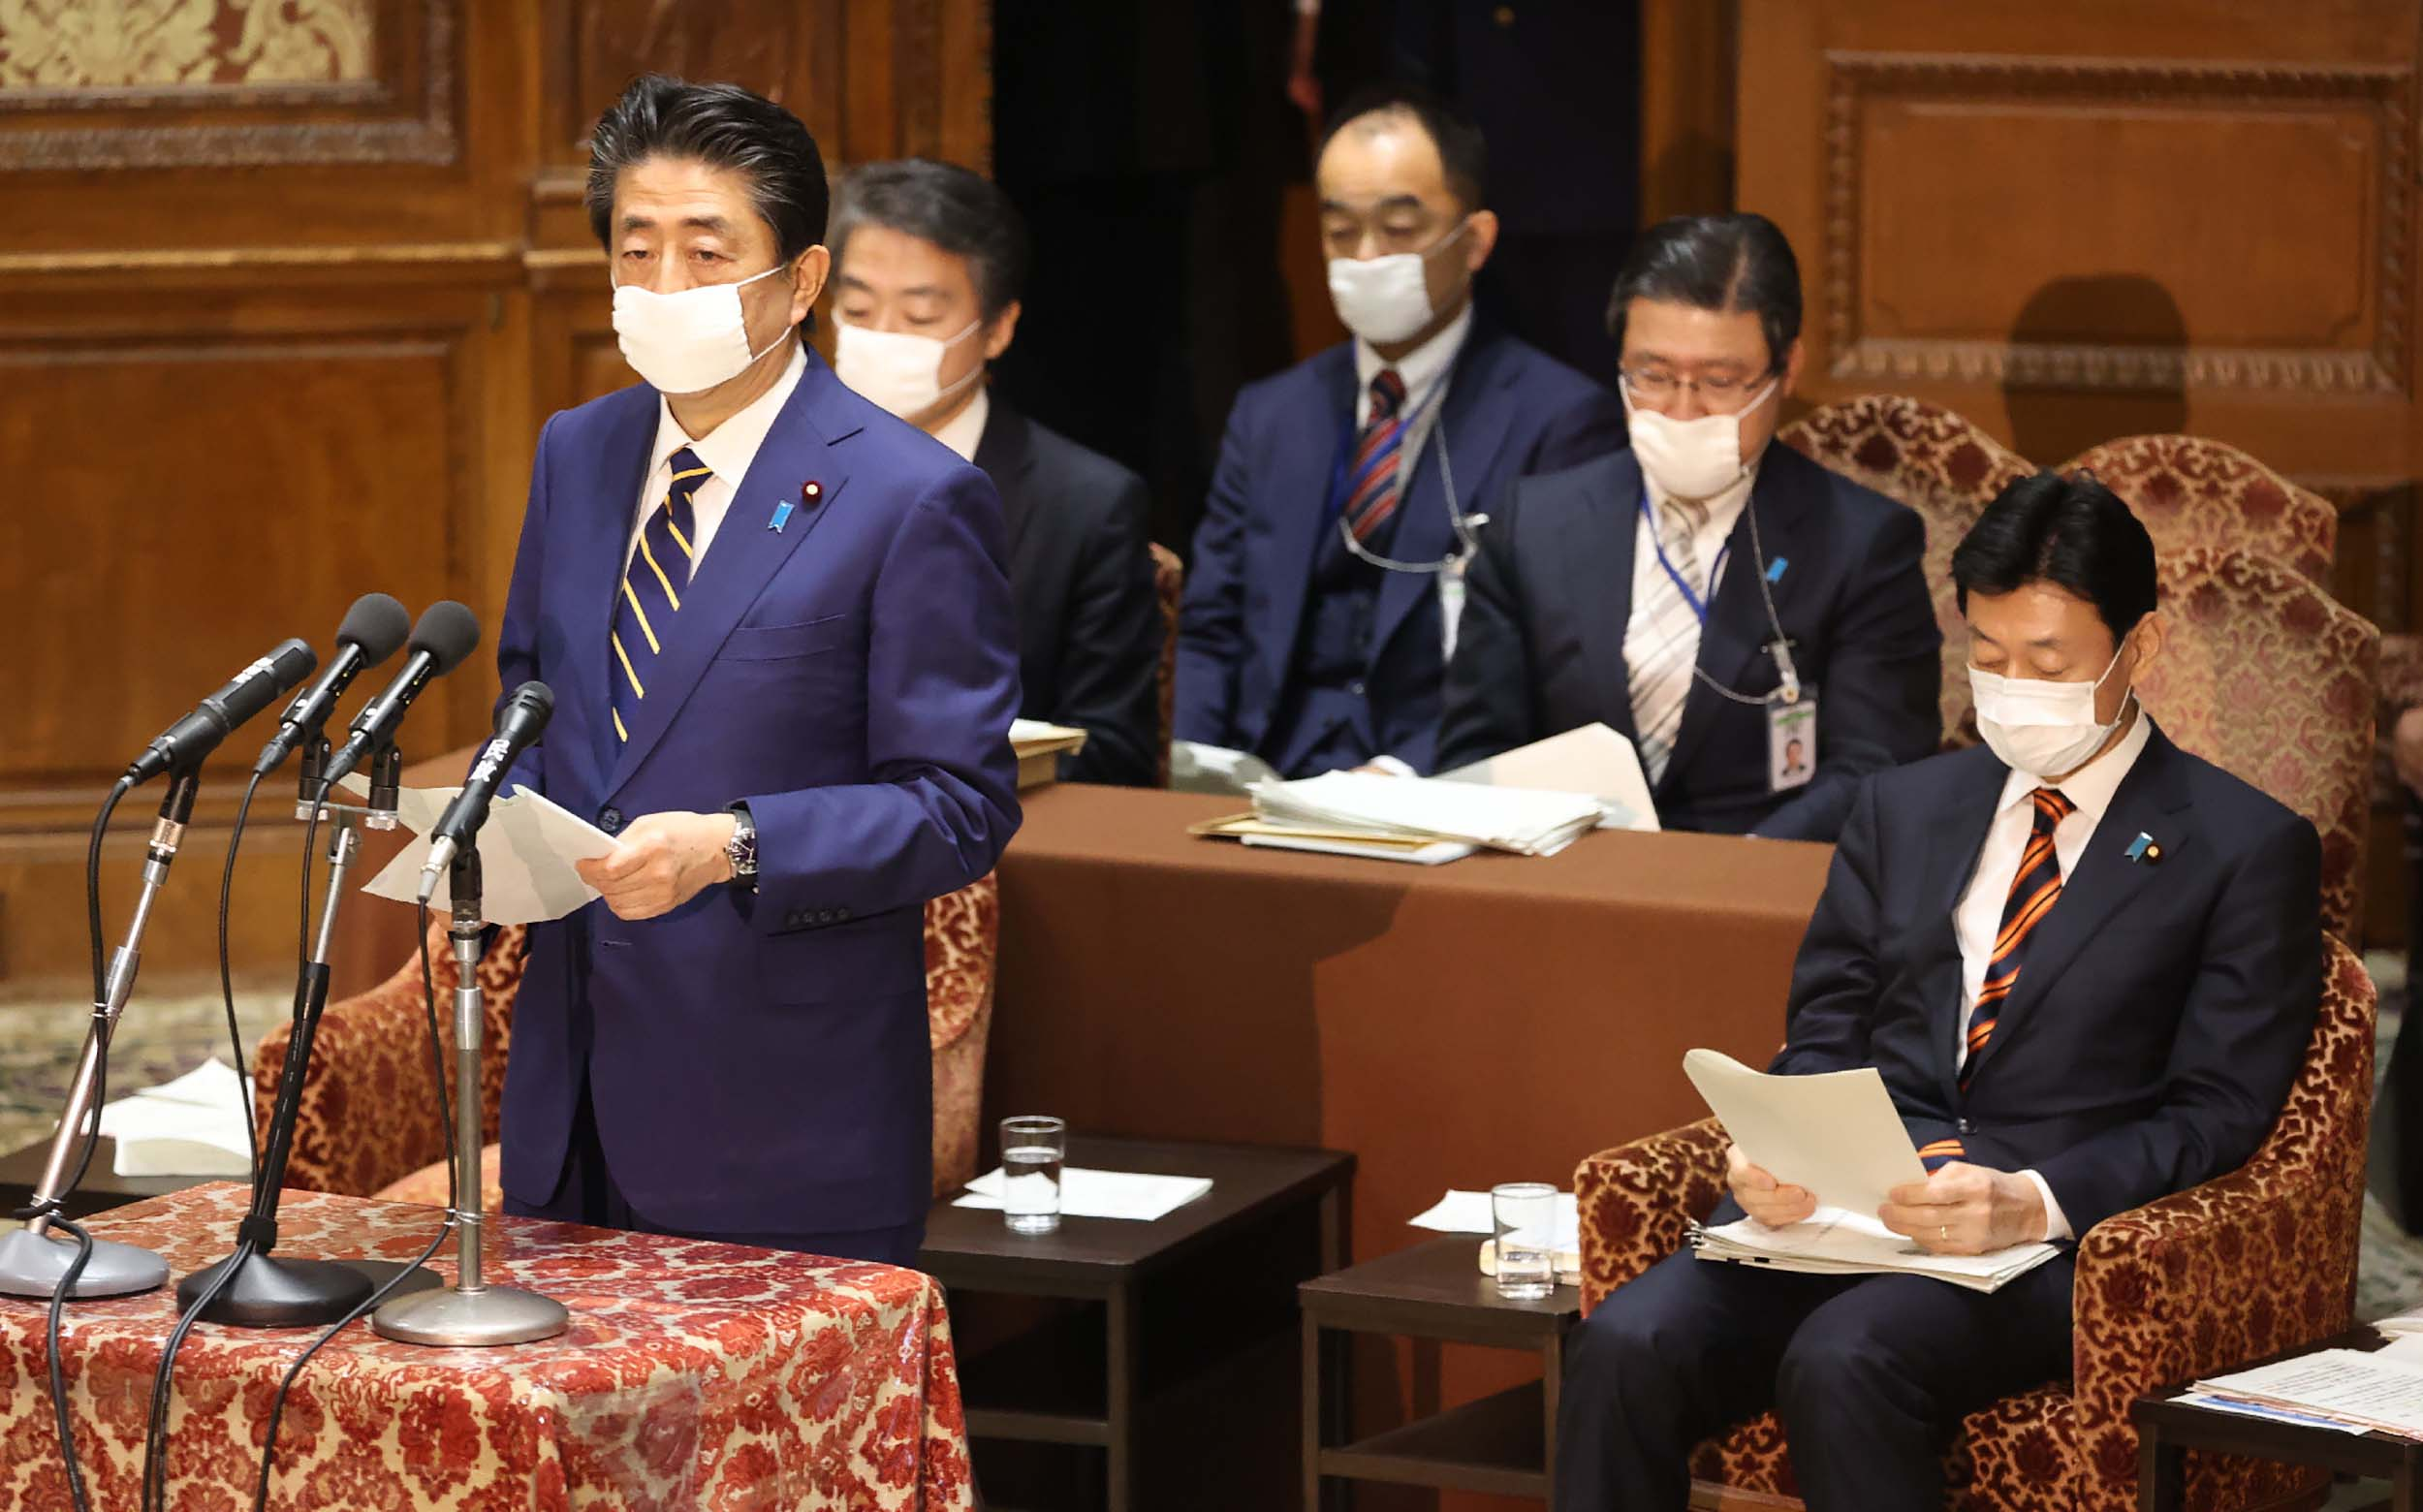 Japan's Prime Minister Shinzo Abe speaks in Tokyo on April 7, before declaring a state of emergency due to the coronavirus outbreak.